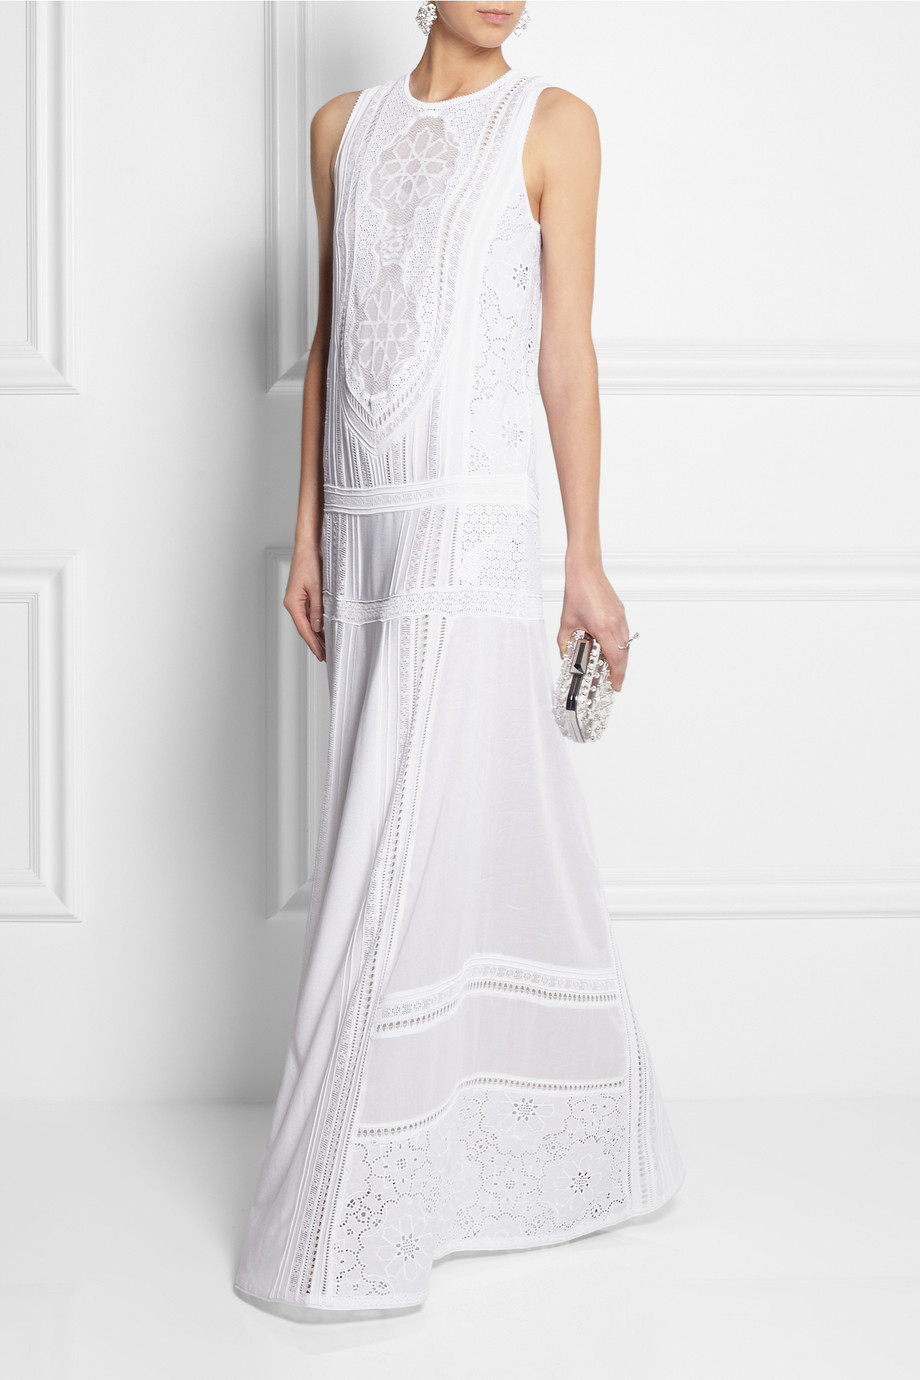 318021f3aad Lyst Roberto Cavalli Cotton And Crocheted Lace Maxi Dress In White